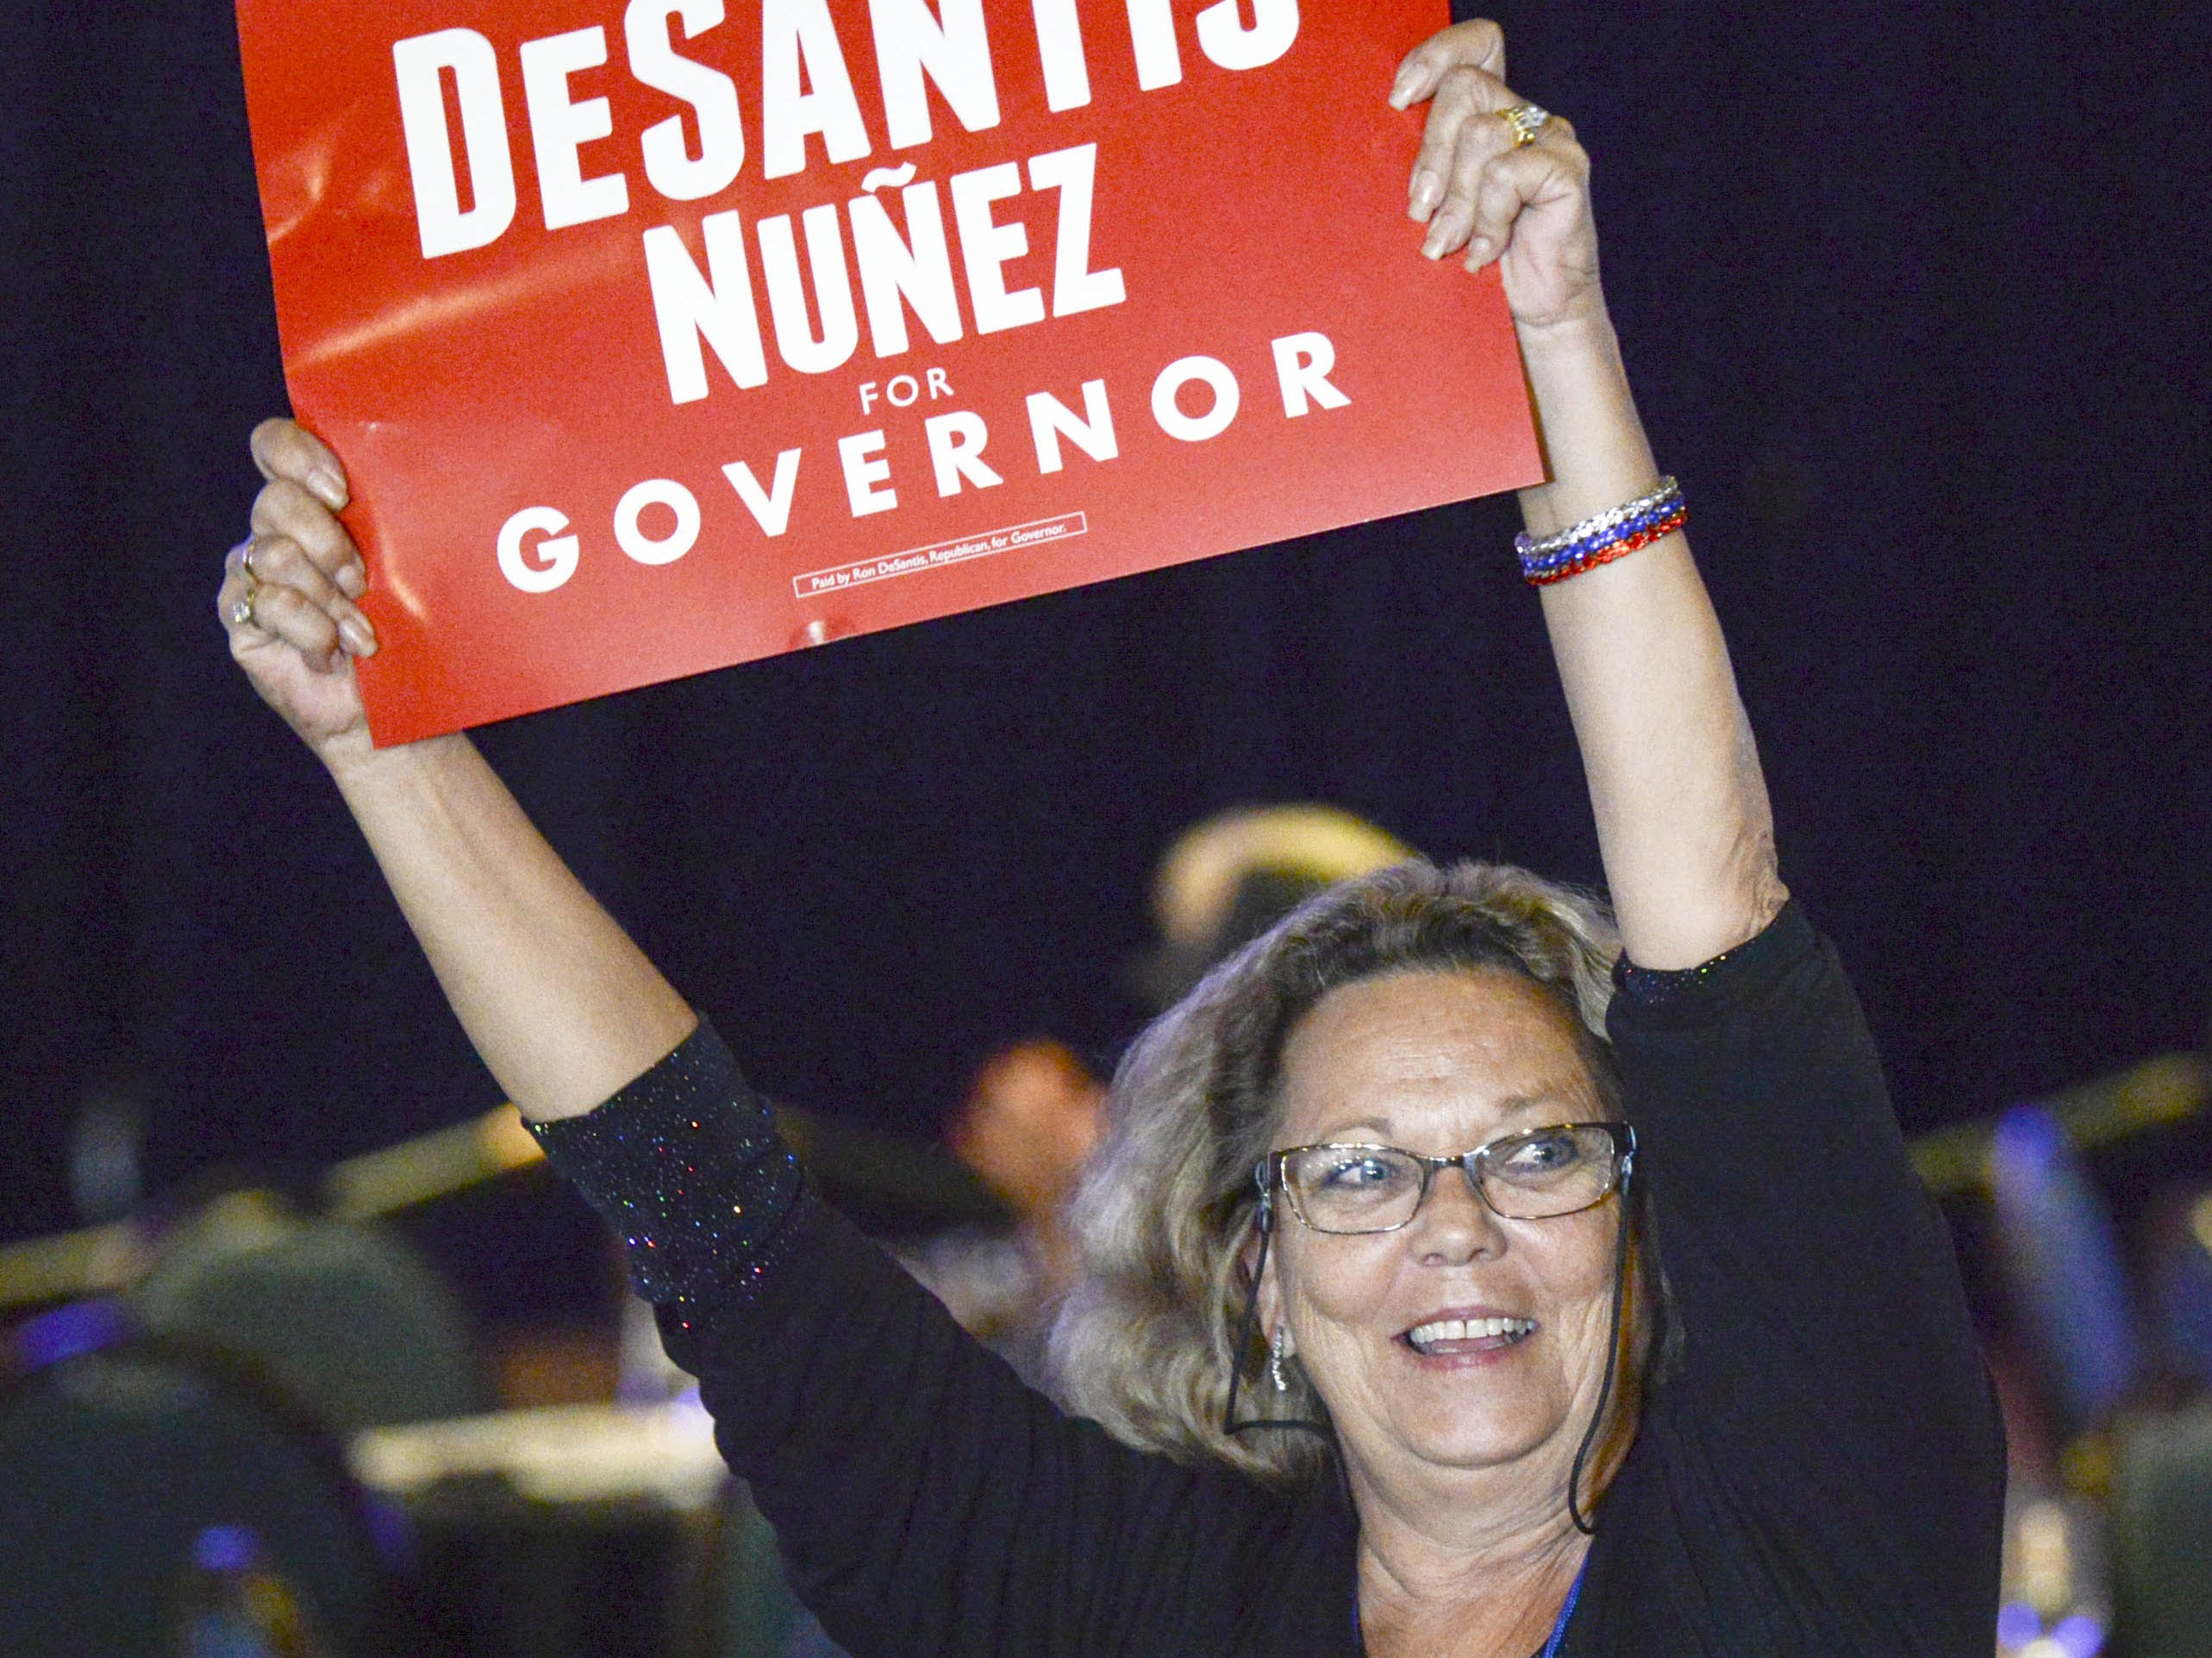 A Ron DeSantis supporter waves a sign during DeSantis' election watch party in Orlando.